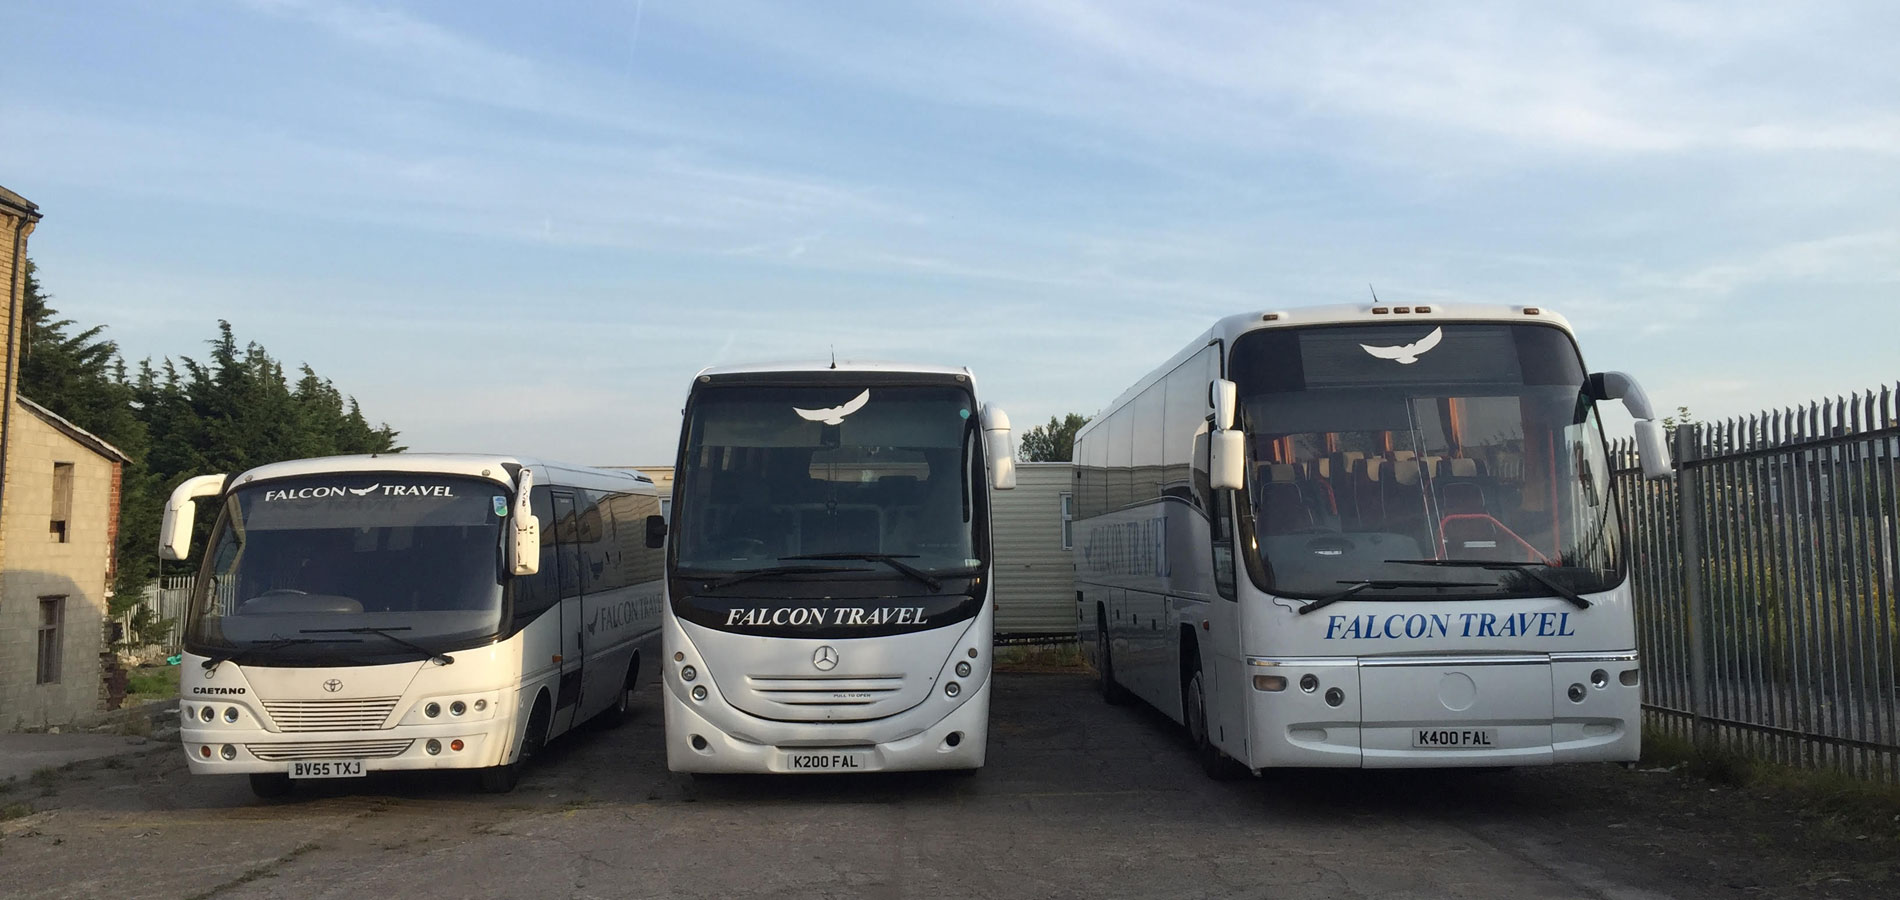 falcon travel buses x 3